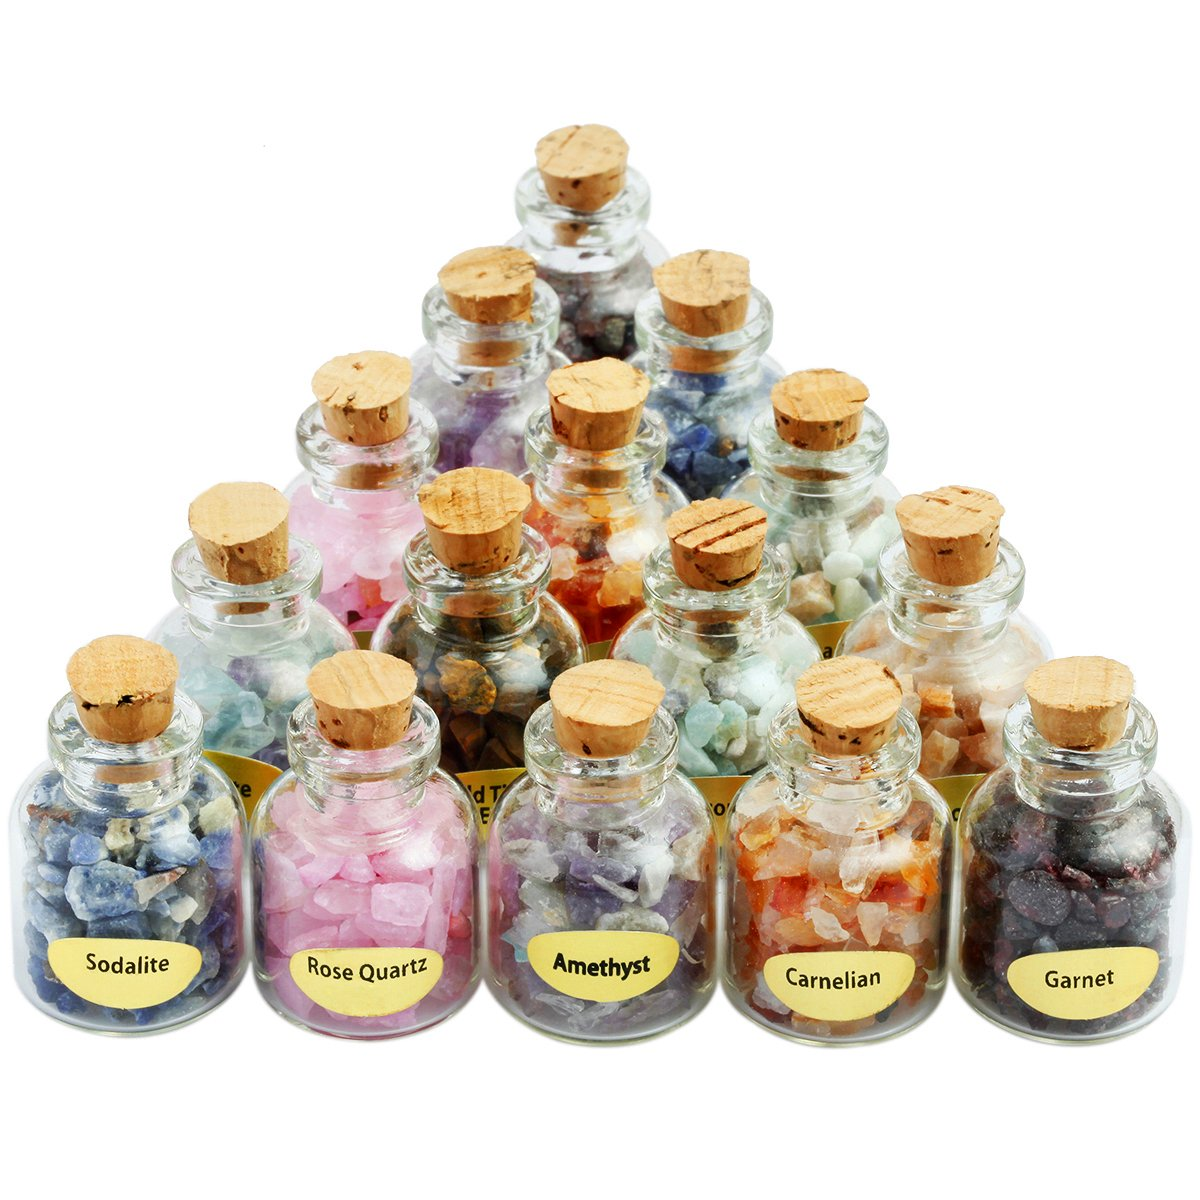 SUNYIK 9 Mini Gemstone Bottles Chip Crystal Healing Tumbled Gem Reiki Wicca Stones Set